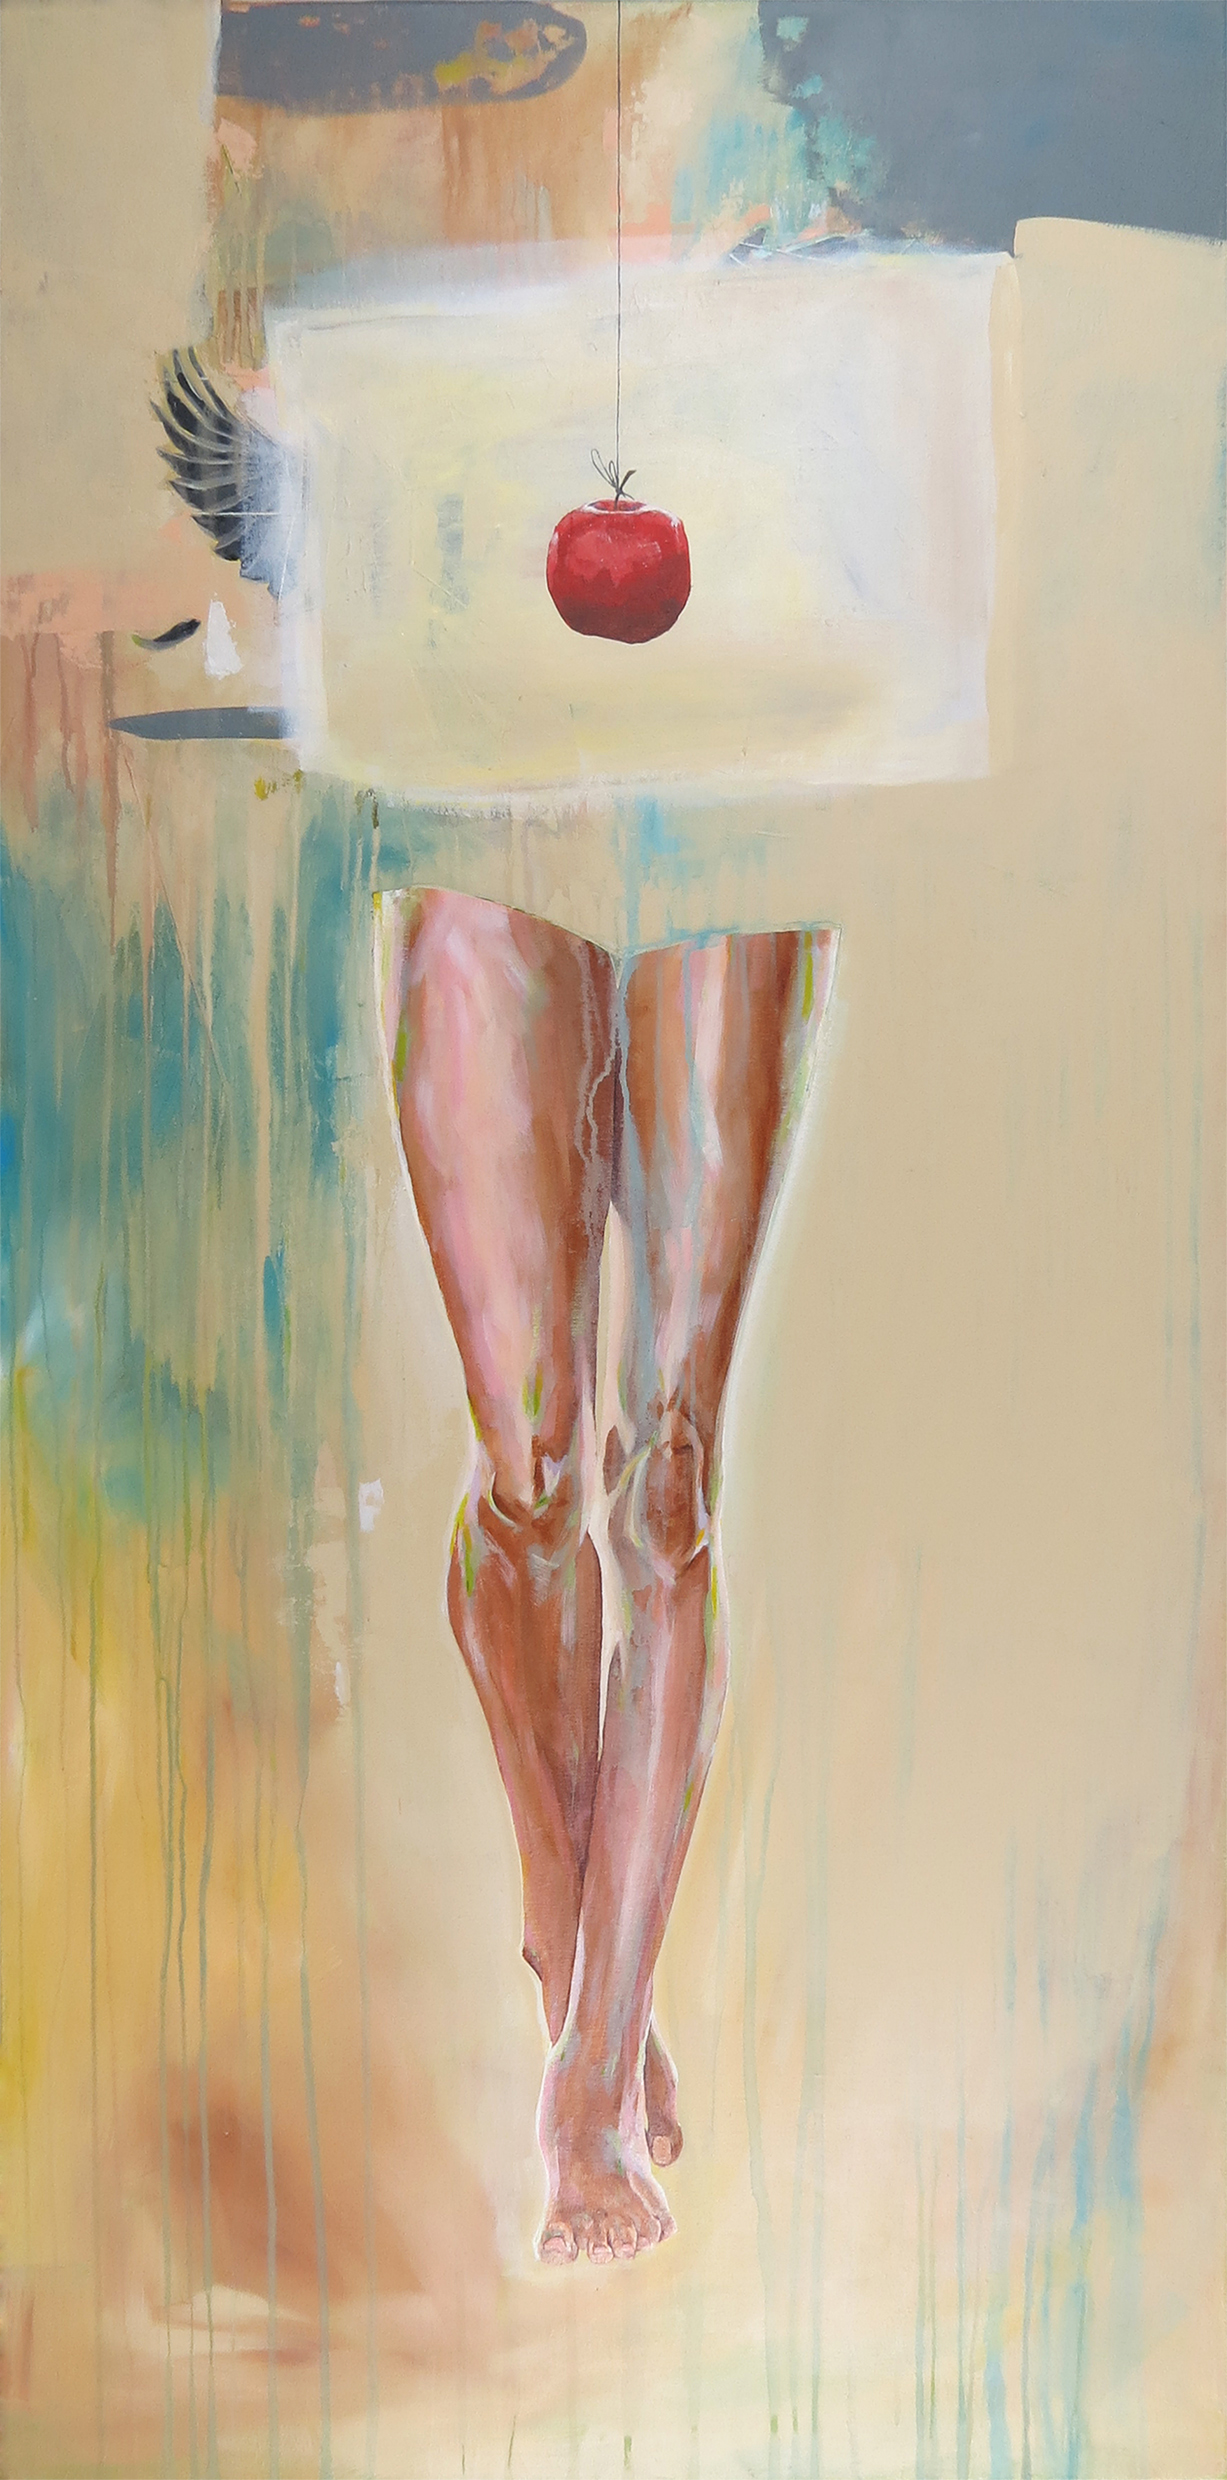 Yassine Mourit - The Villusion Painting No Regrets .jpg